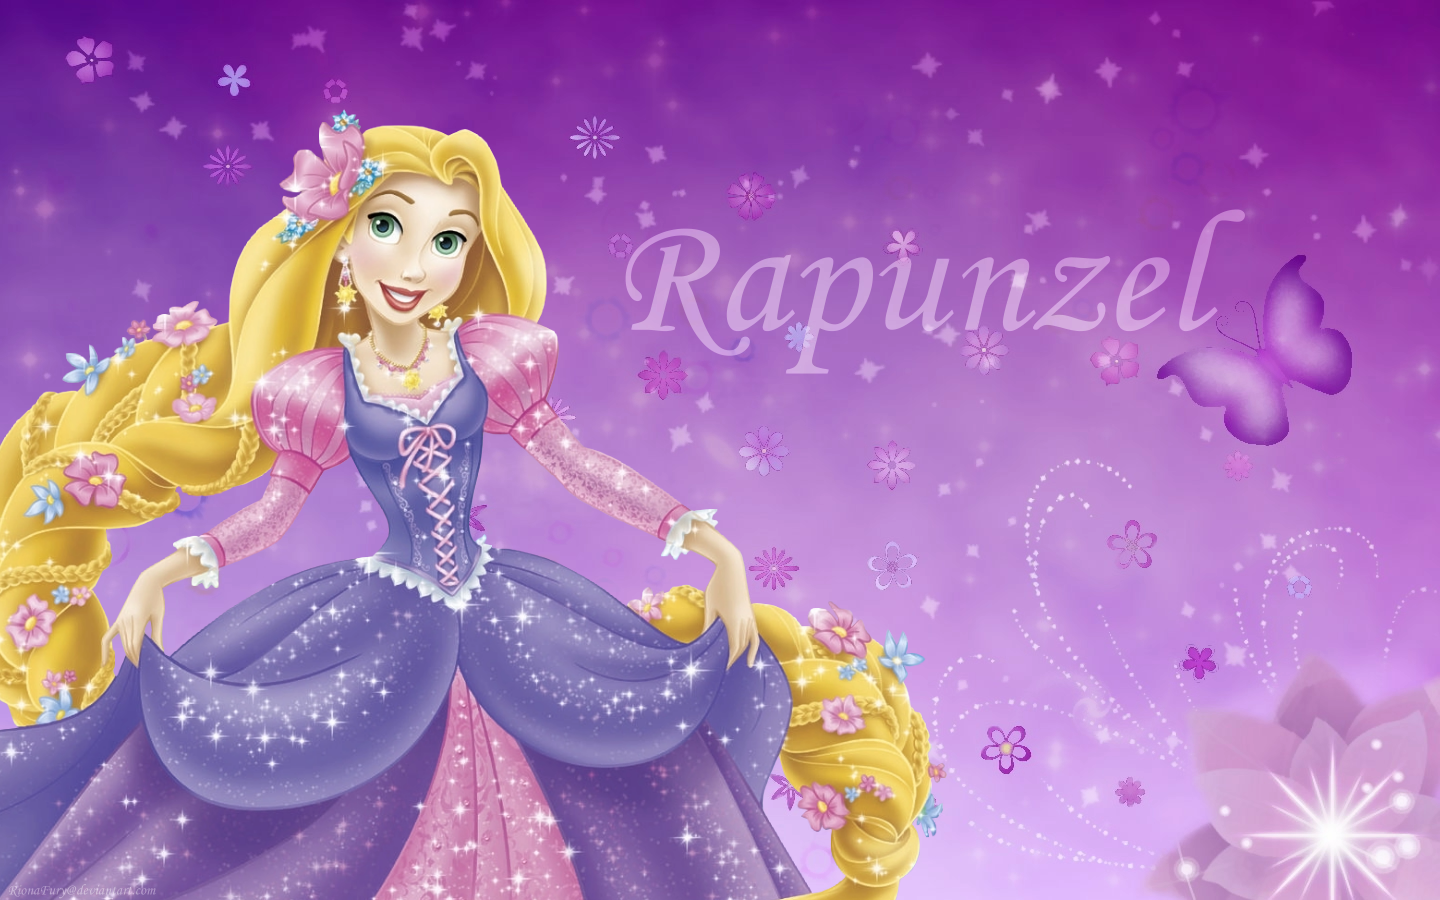 Disney Princess Disney Princess Rapunzel